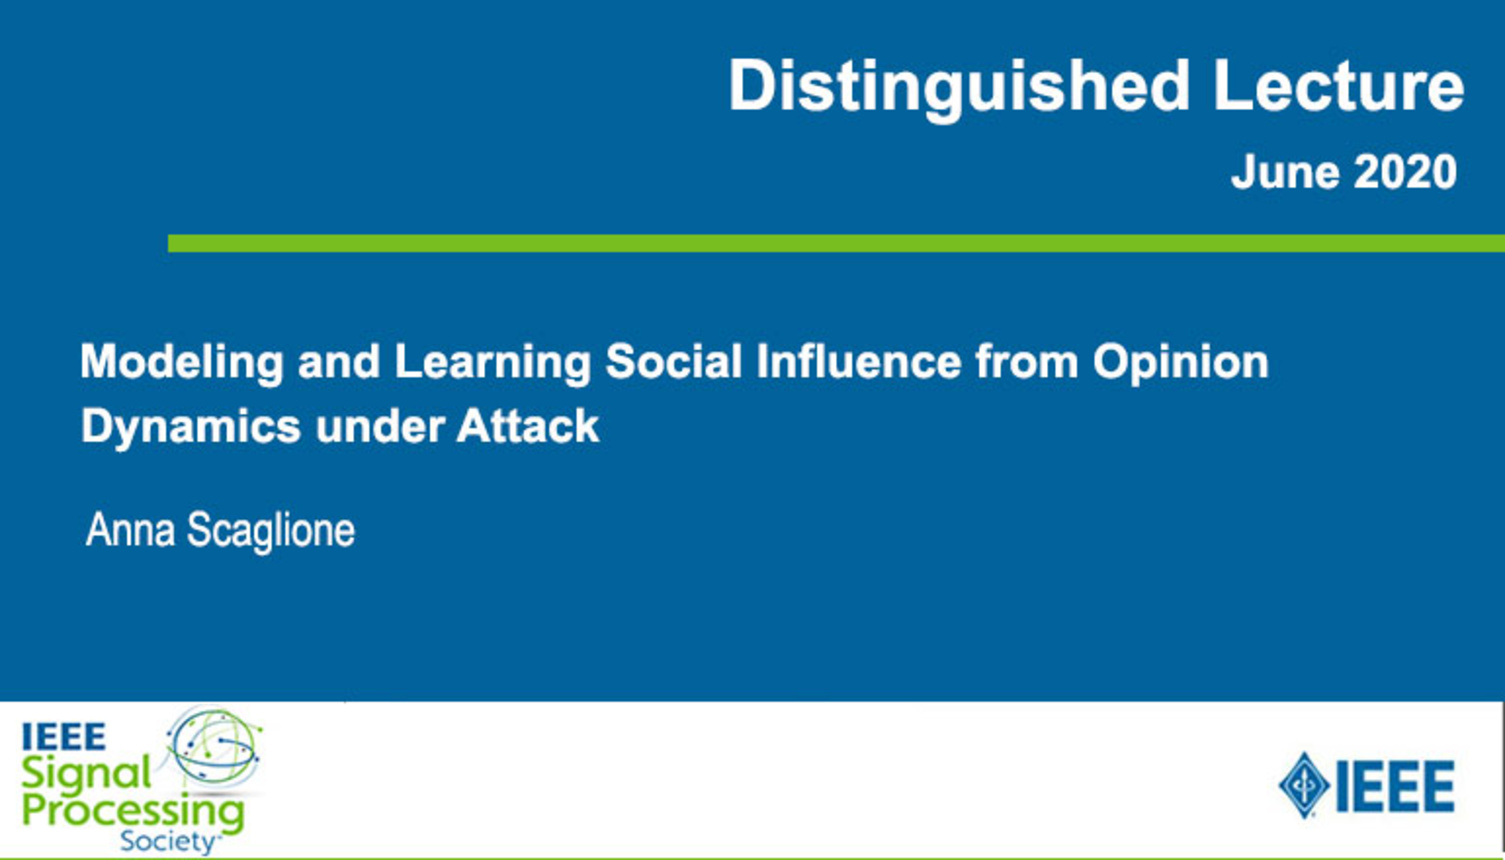 Modeling and Learning Social Influence from Opinion Dynamics under Attack